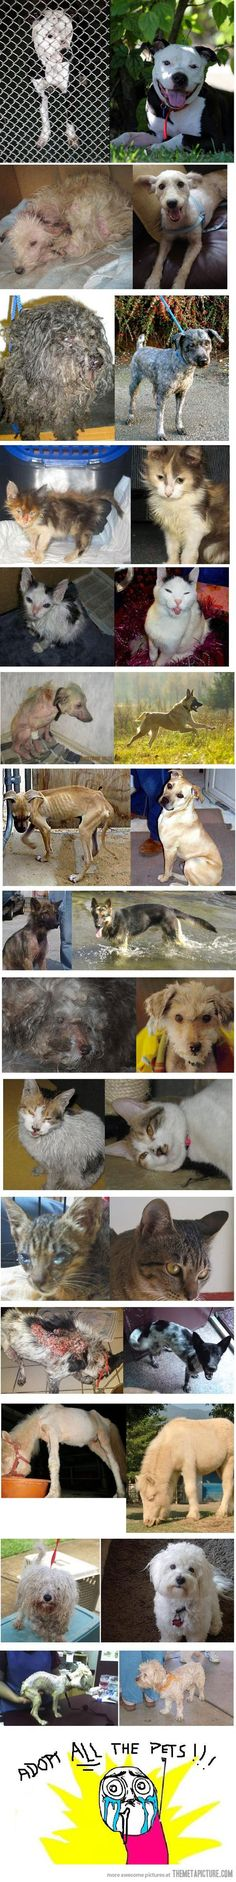 Rescued animals – before and after. The simple kindness every human being should have.